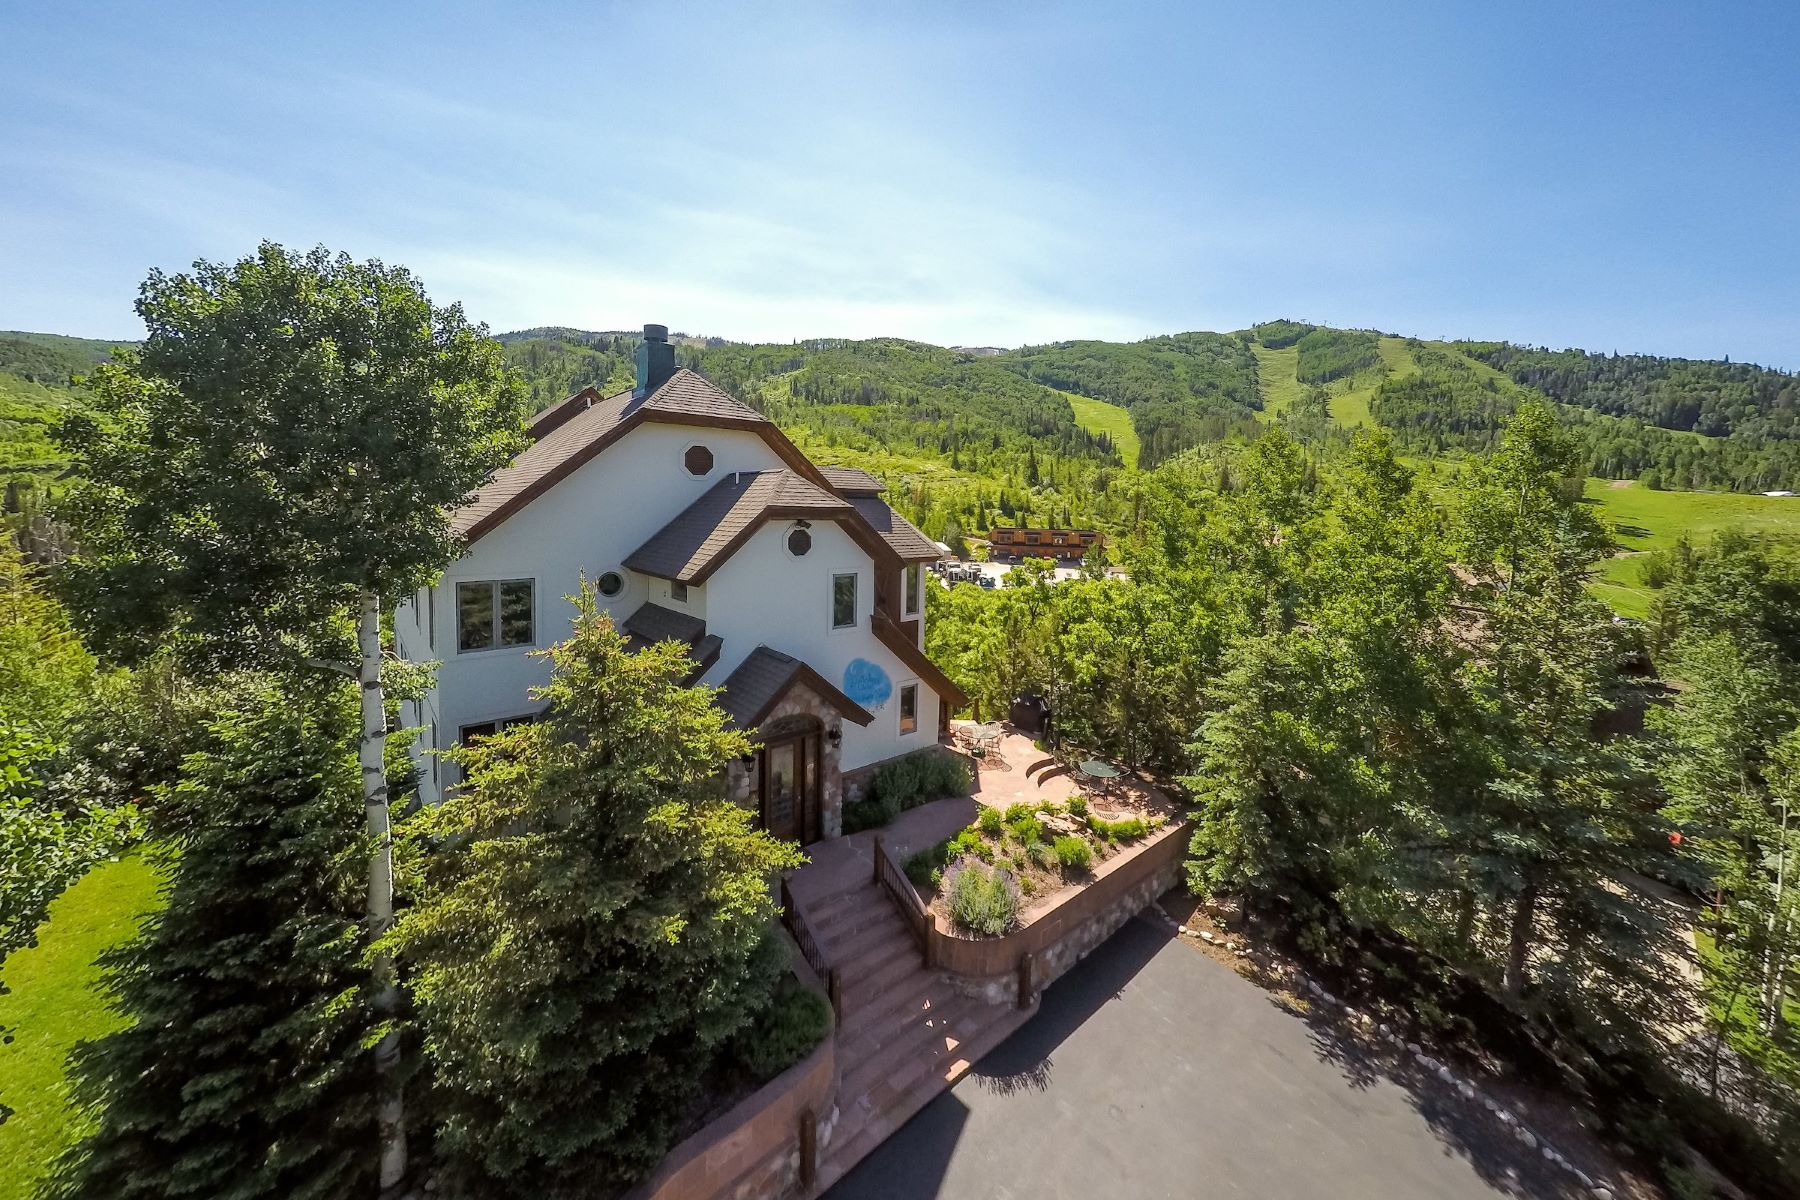 Single Family Home for Sale at Edelweiss Chalet 3040 Temple Knoll Steamboat Springs, Colorado, 80487 United States